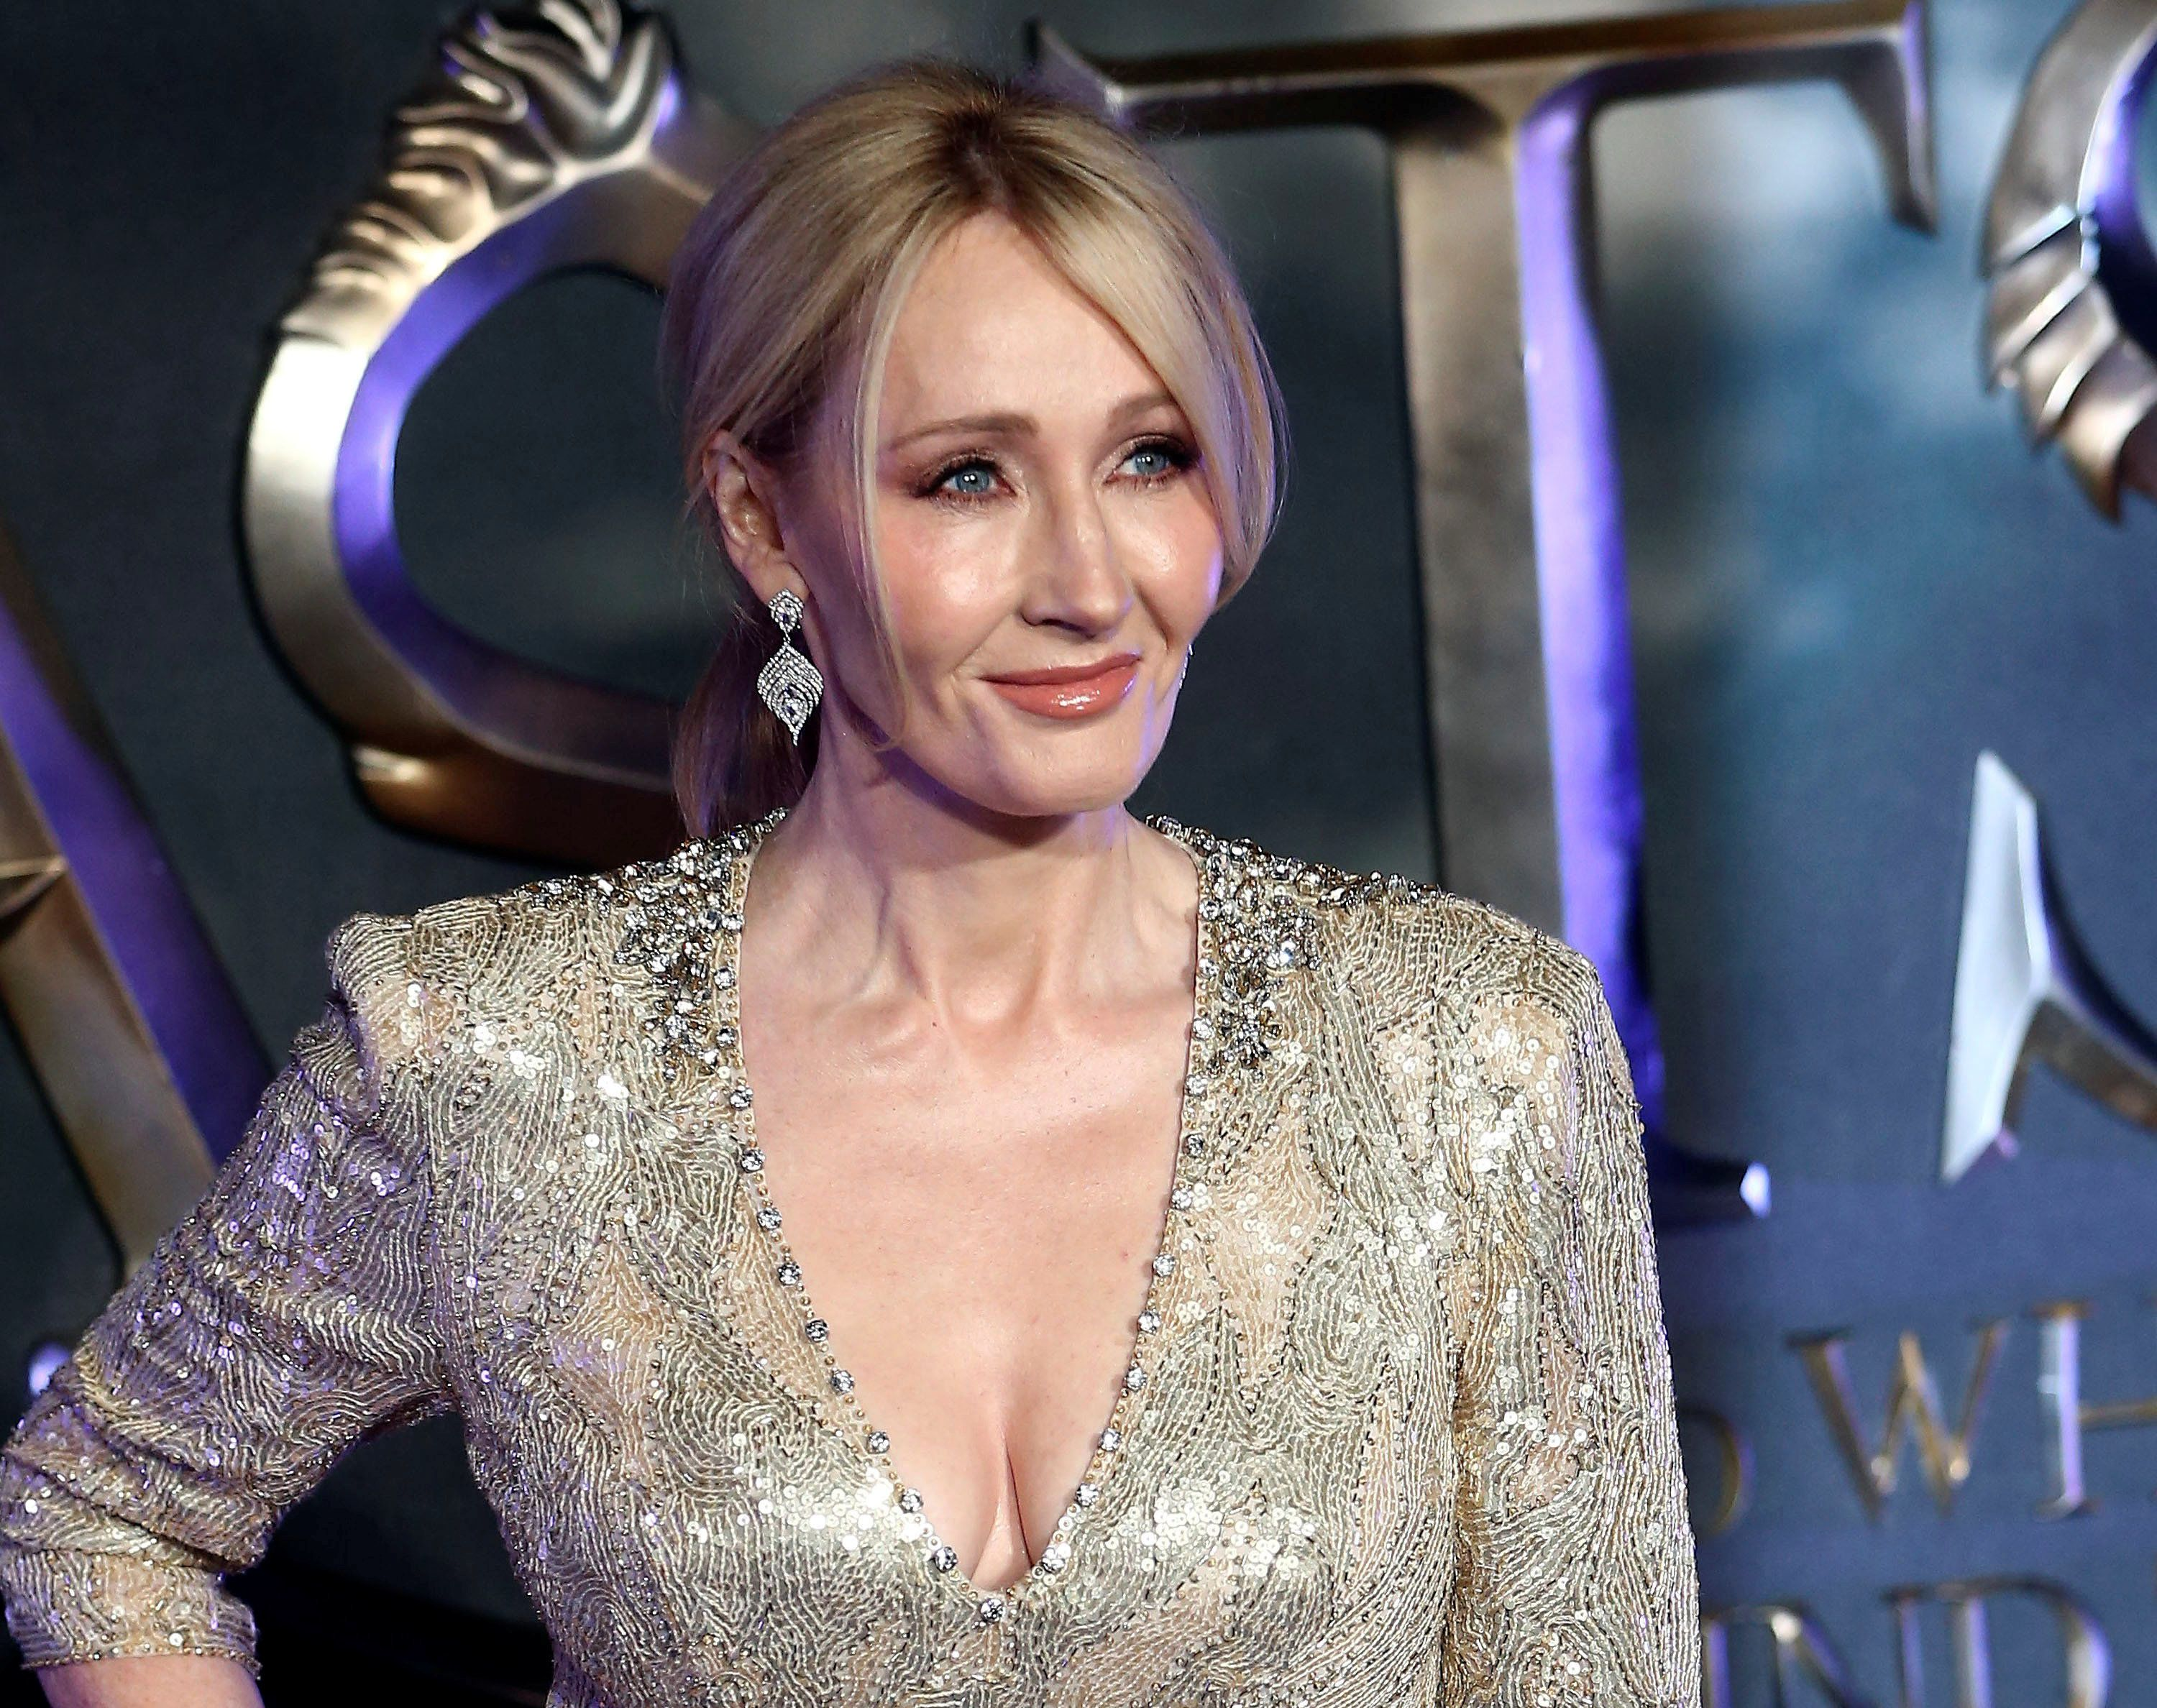 JK Rowling Answers The Question She Gets Asked Most About 'Harry Potter'